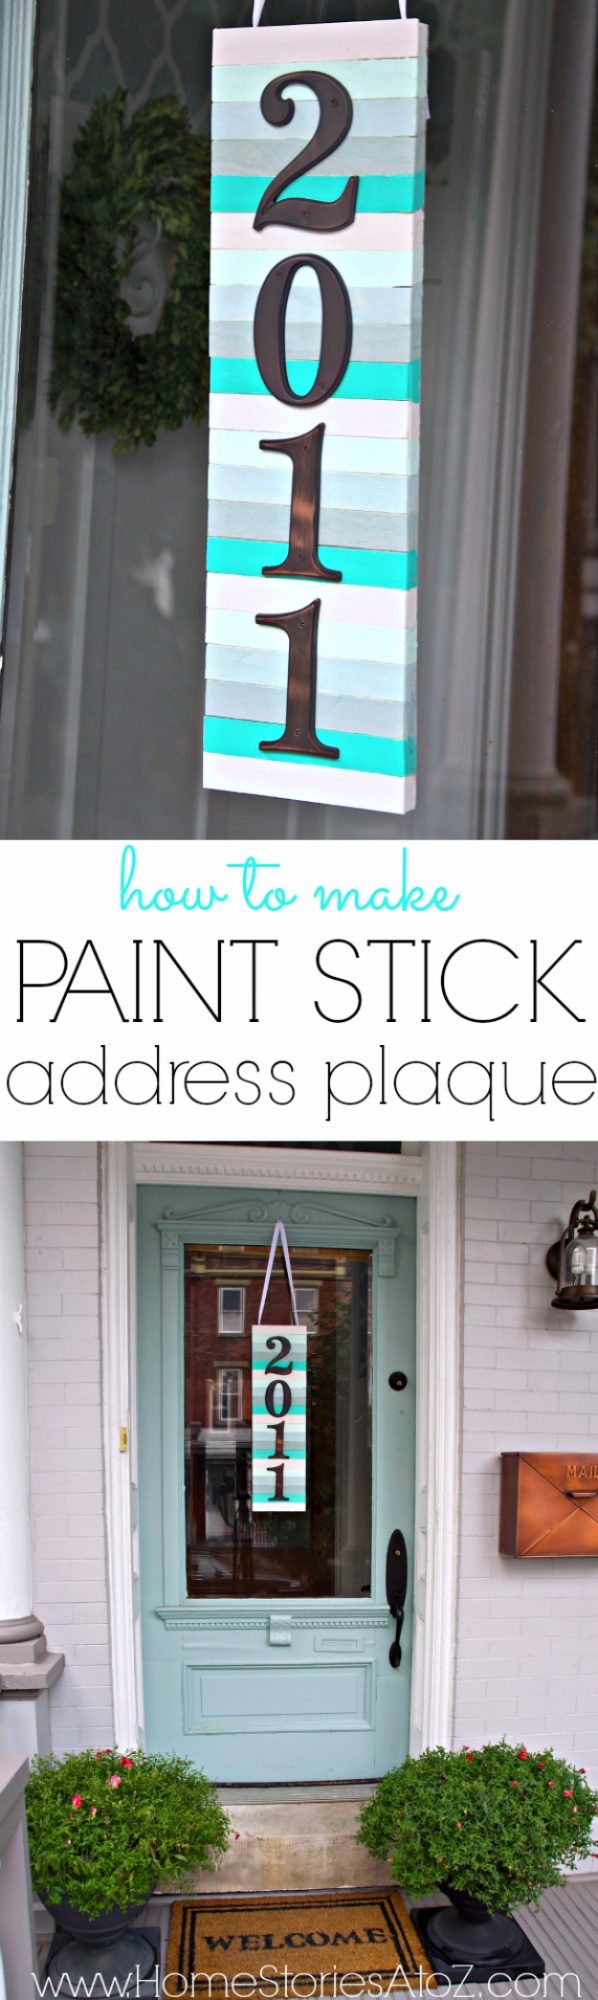 15 Fun And Easy DIY Paint Stick Ideas To Spice Up Your Home Decor